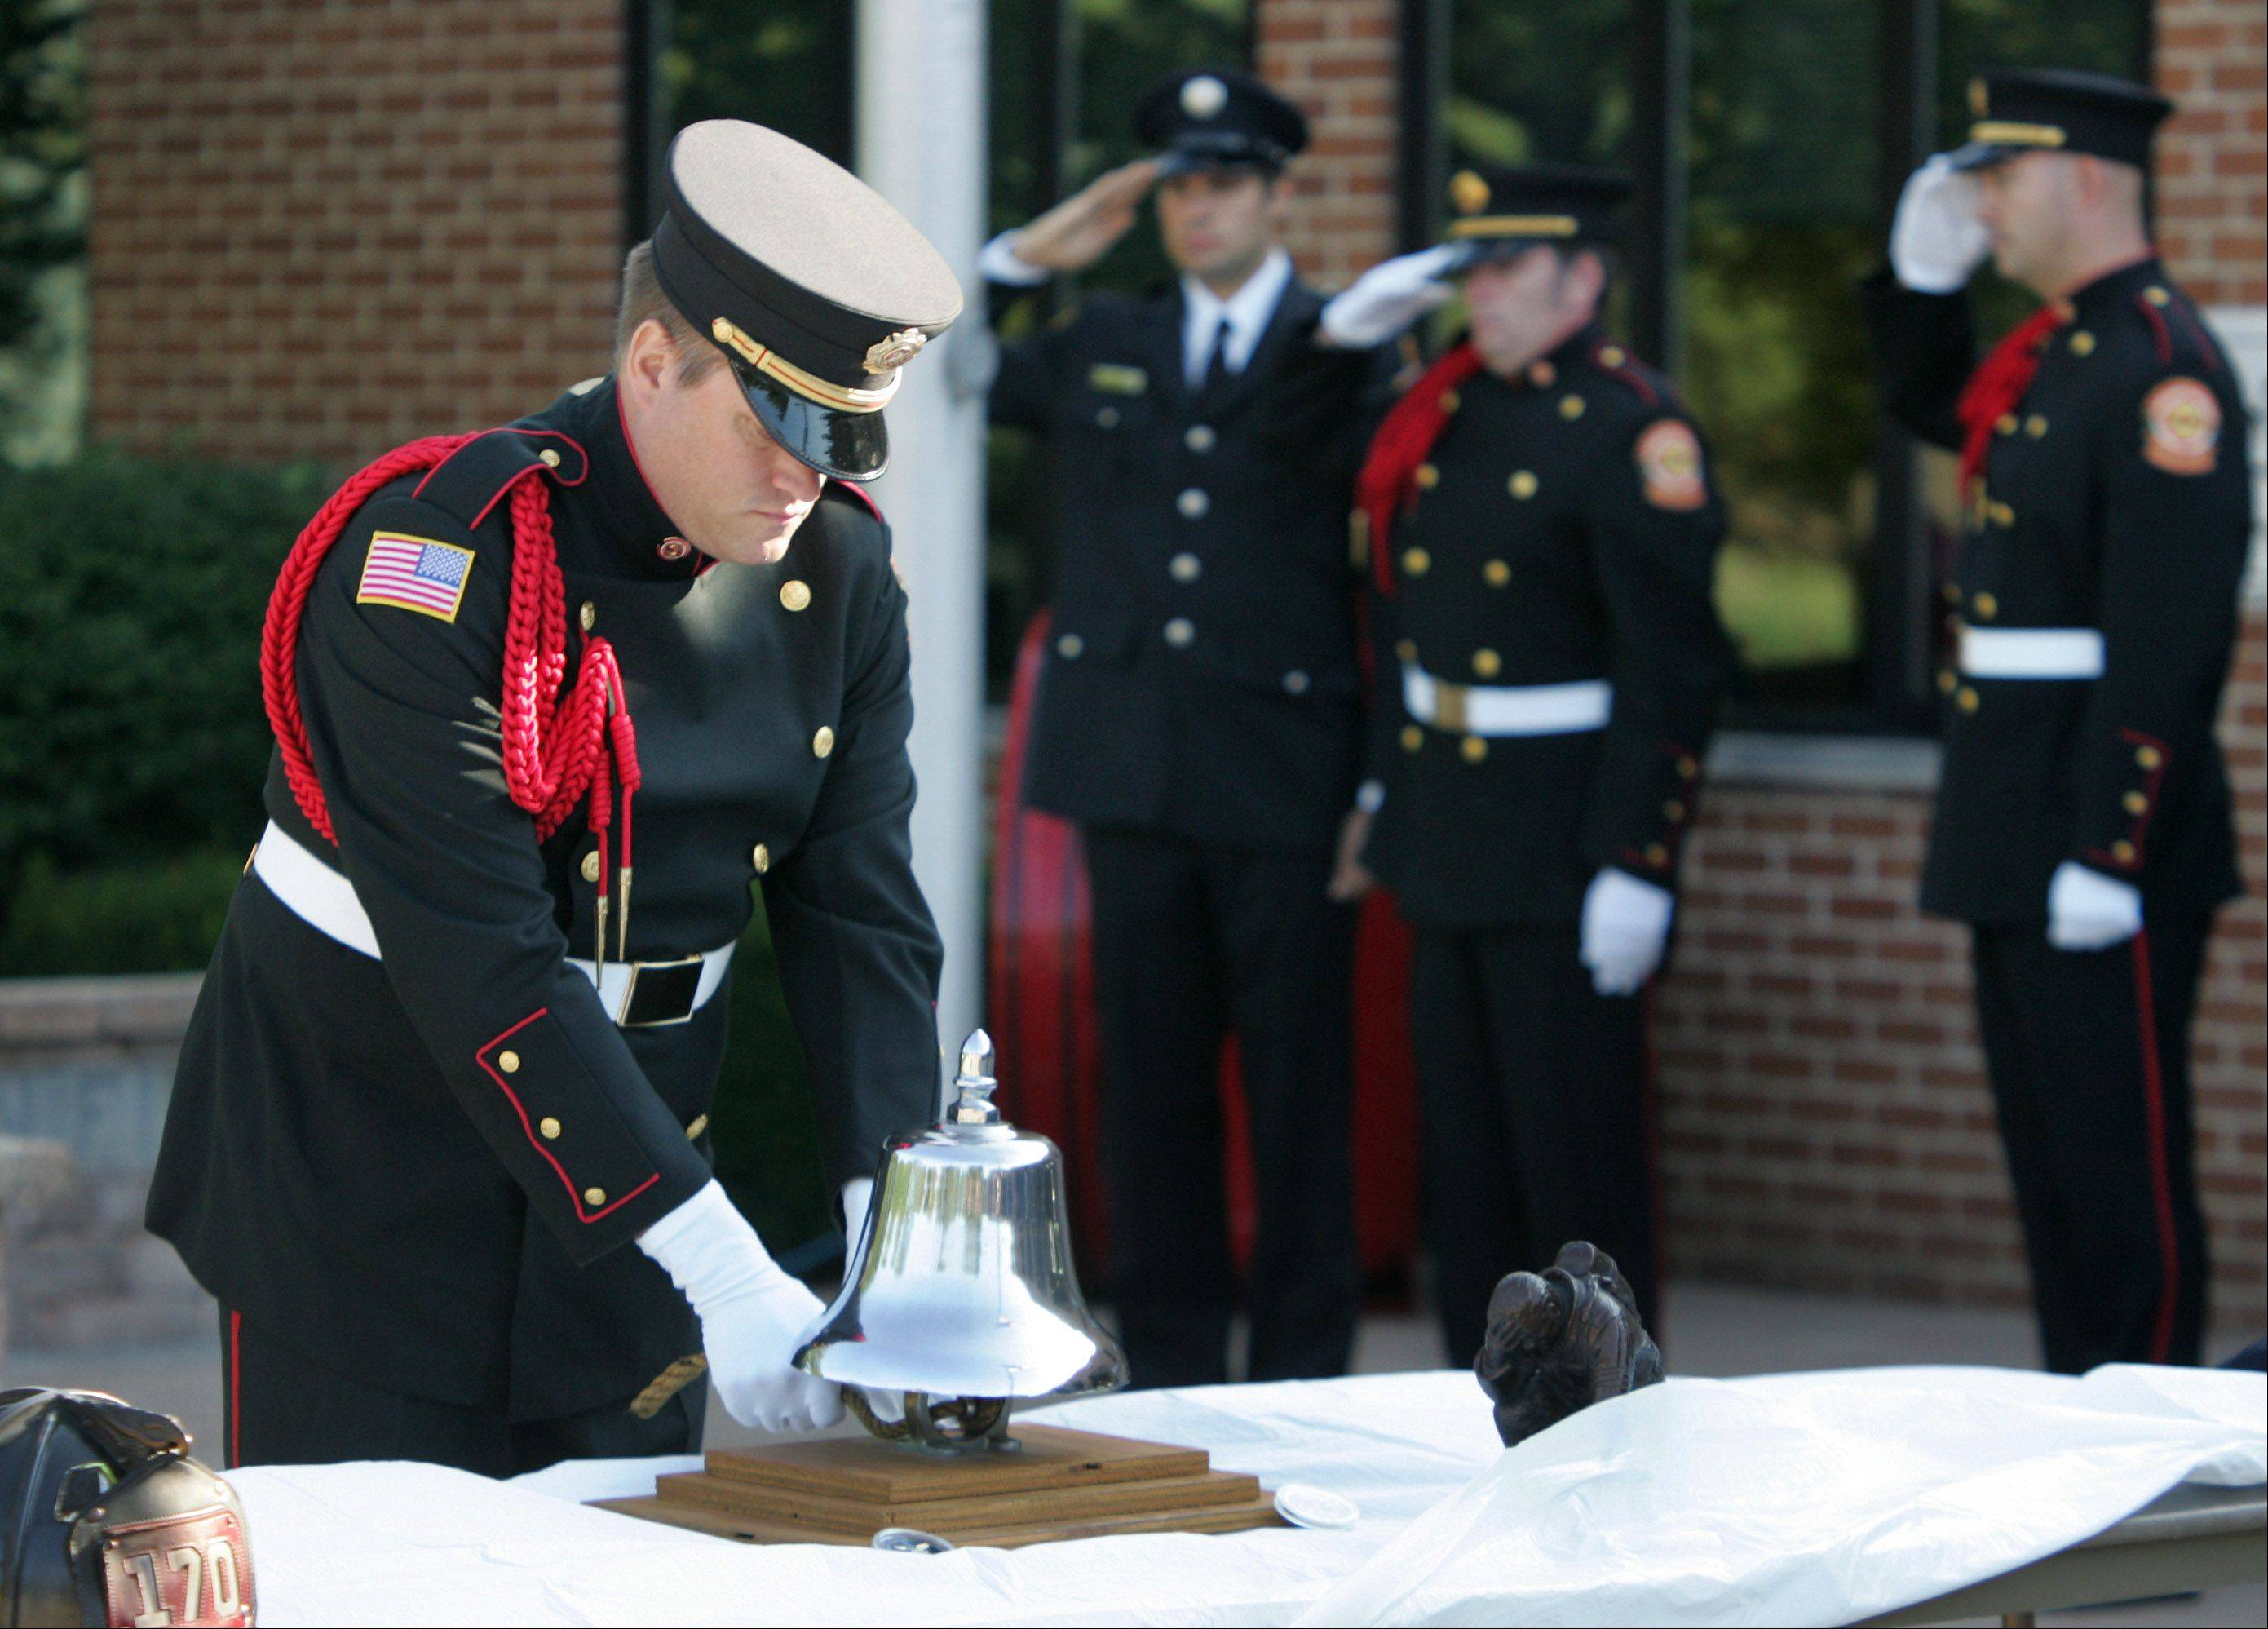 Firefighter Jim Cook rings a bell during the Remember 9-1-1 Ceremony by the Lincolnshire-Riverwoods Fire Protection District Tuesday at the Schelter Road fire station.